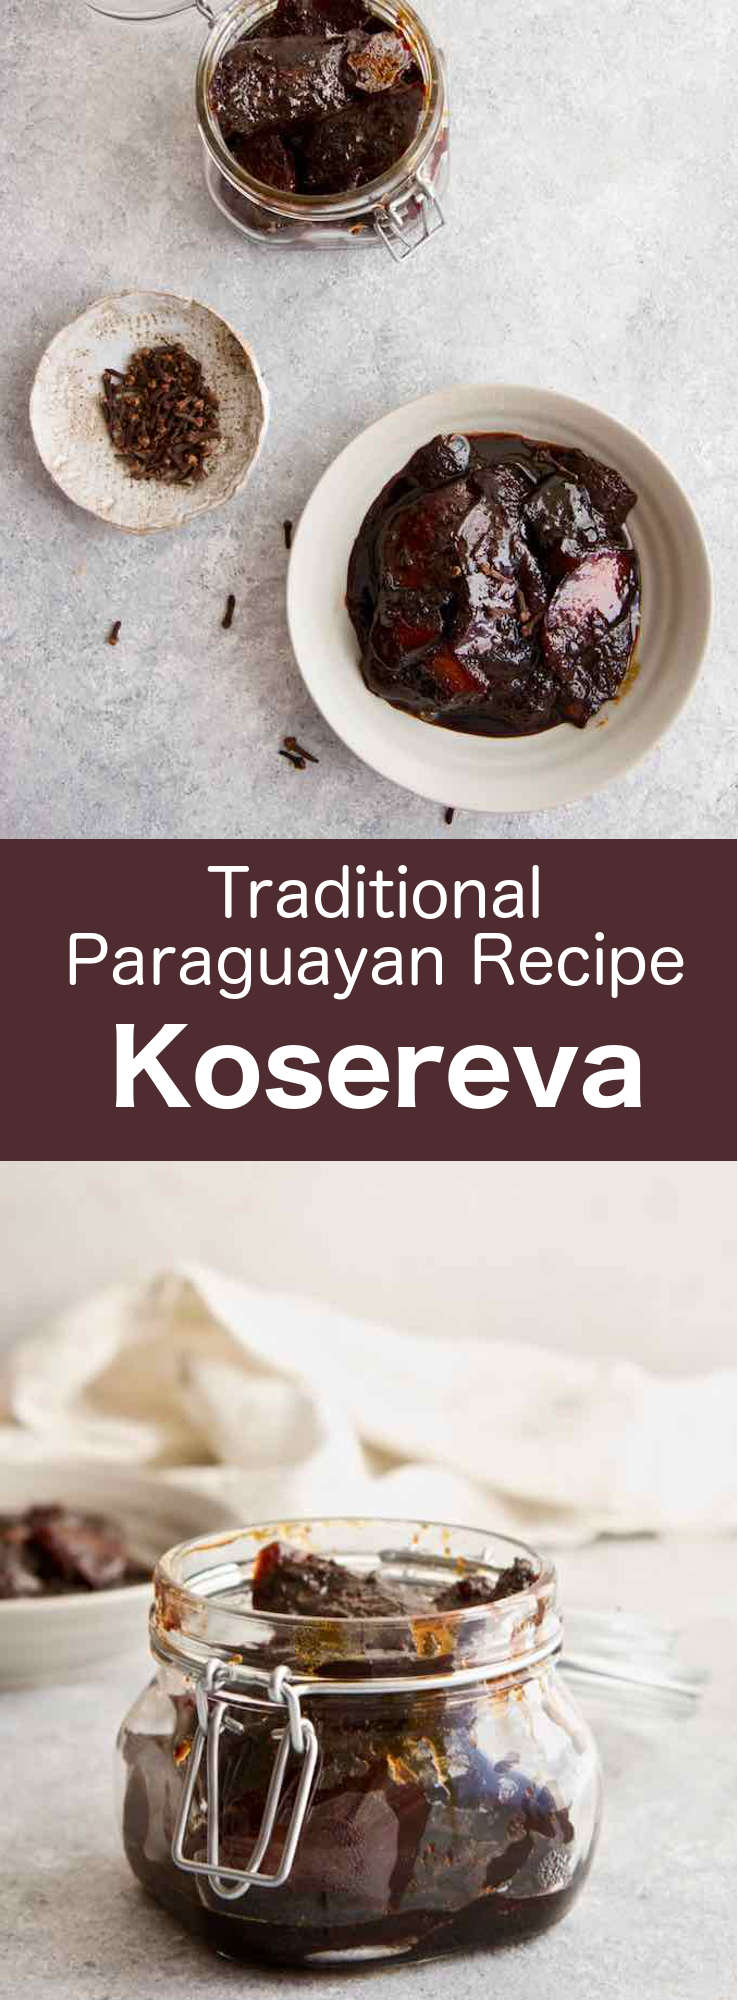 Kosereva is a sweet dessert from Paraguay prepared with apepu sour orange peels, sugar, and molasses. The preserved orange rings are a mixture of sweet and sour, and are typically served by themselves or with a side of soft cheese. #Paraguay #ParaguayanCuisine #ParaguayanRecipe #LatinAmericanCuisine #LatinAmericanRecipe #SouthAmericanCuisine #SouthAmericanRecipe #WorldFlavors #196flavors